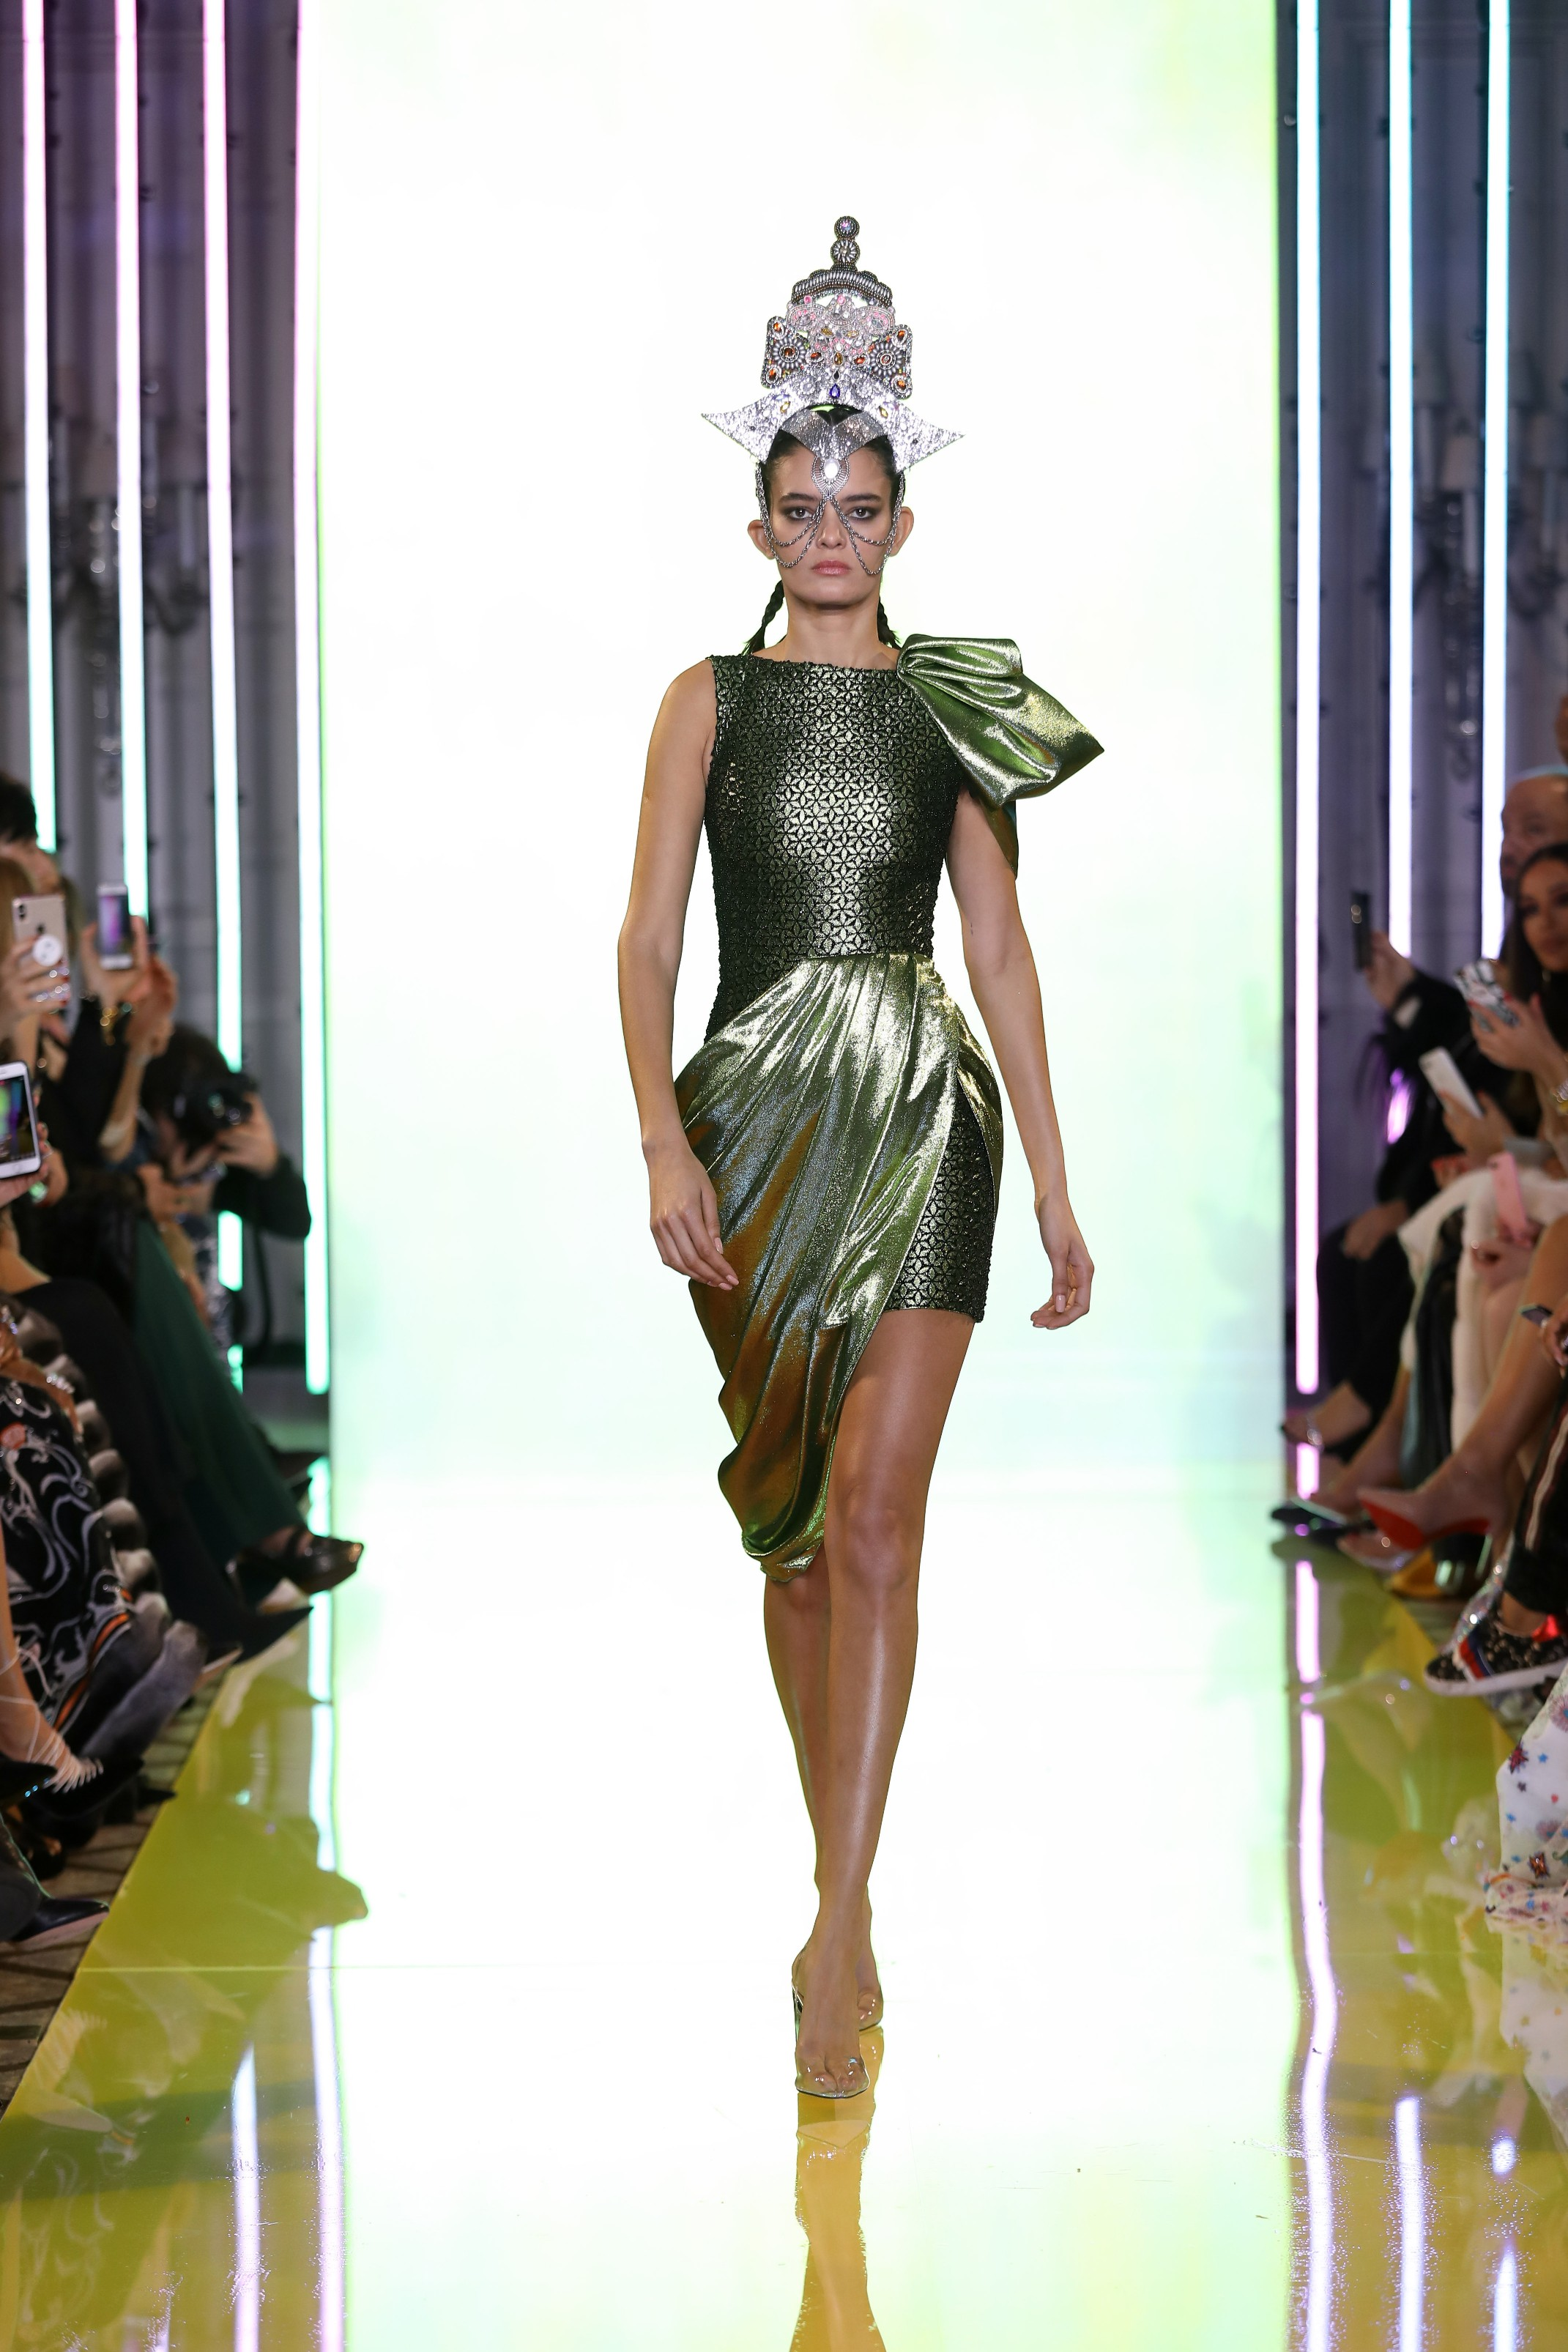 SS19-29- Olive Green Asymmetric Gown Featuring A Tulip Skirt And Boat Neck Top Embellished With Black Beads .jpg